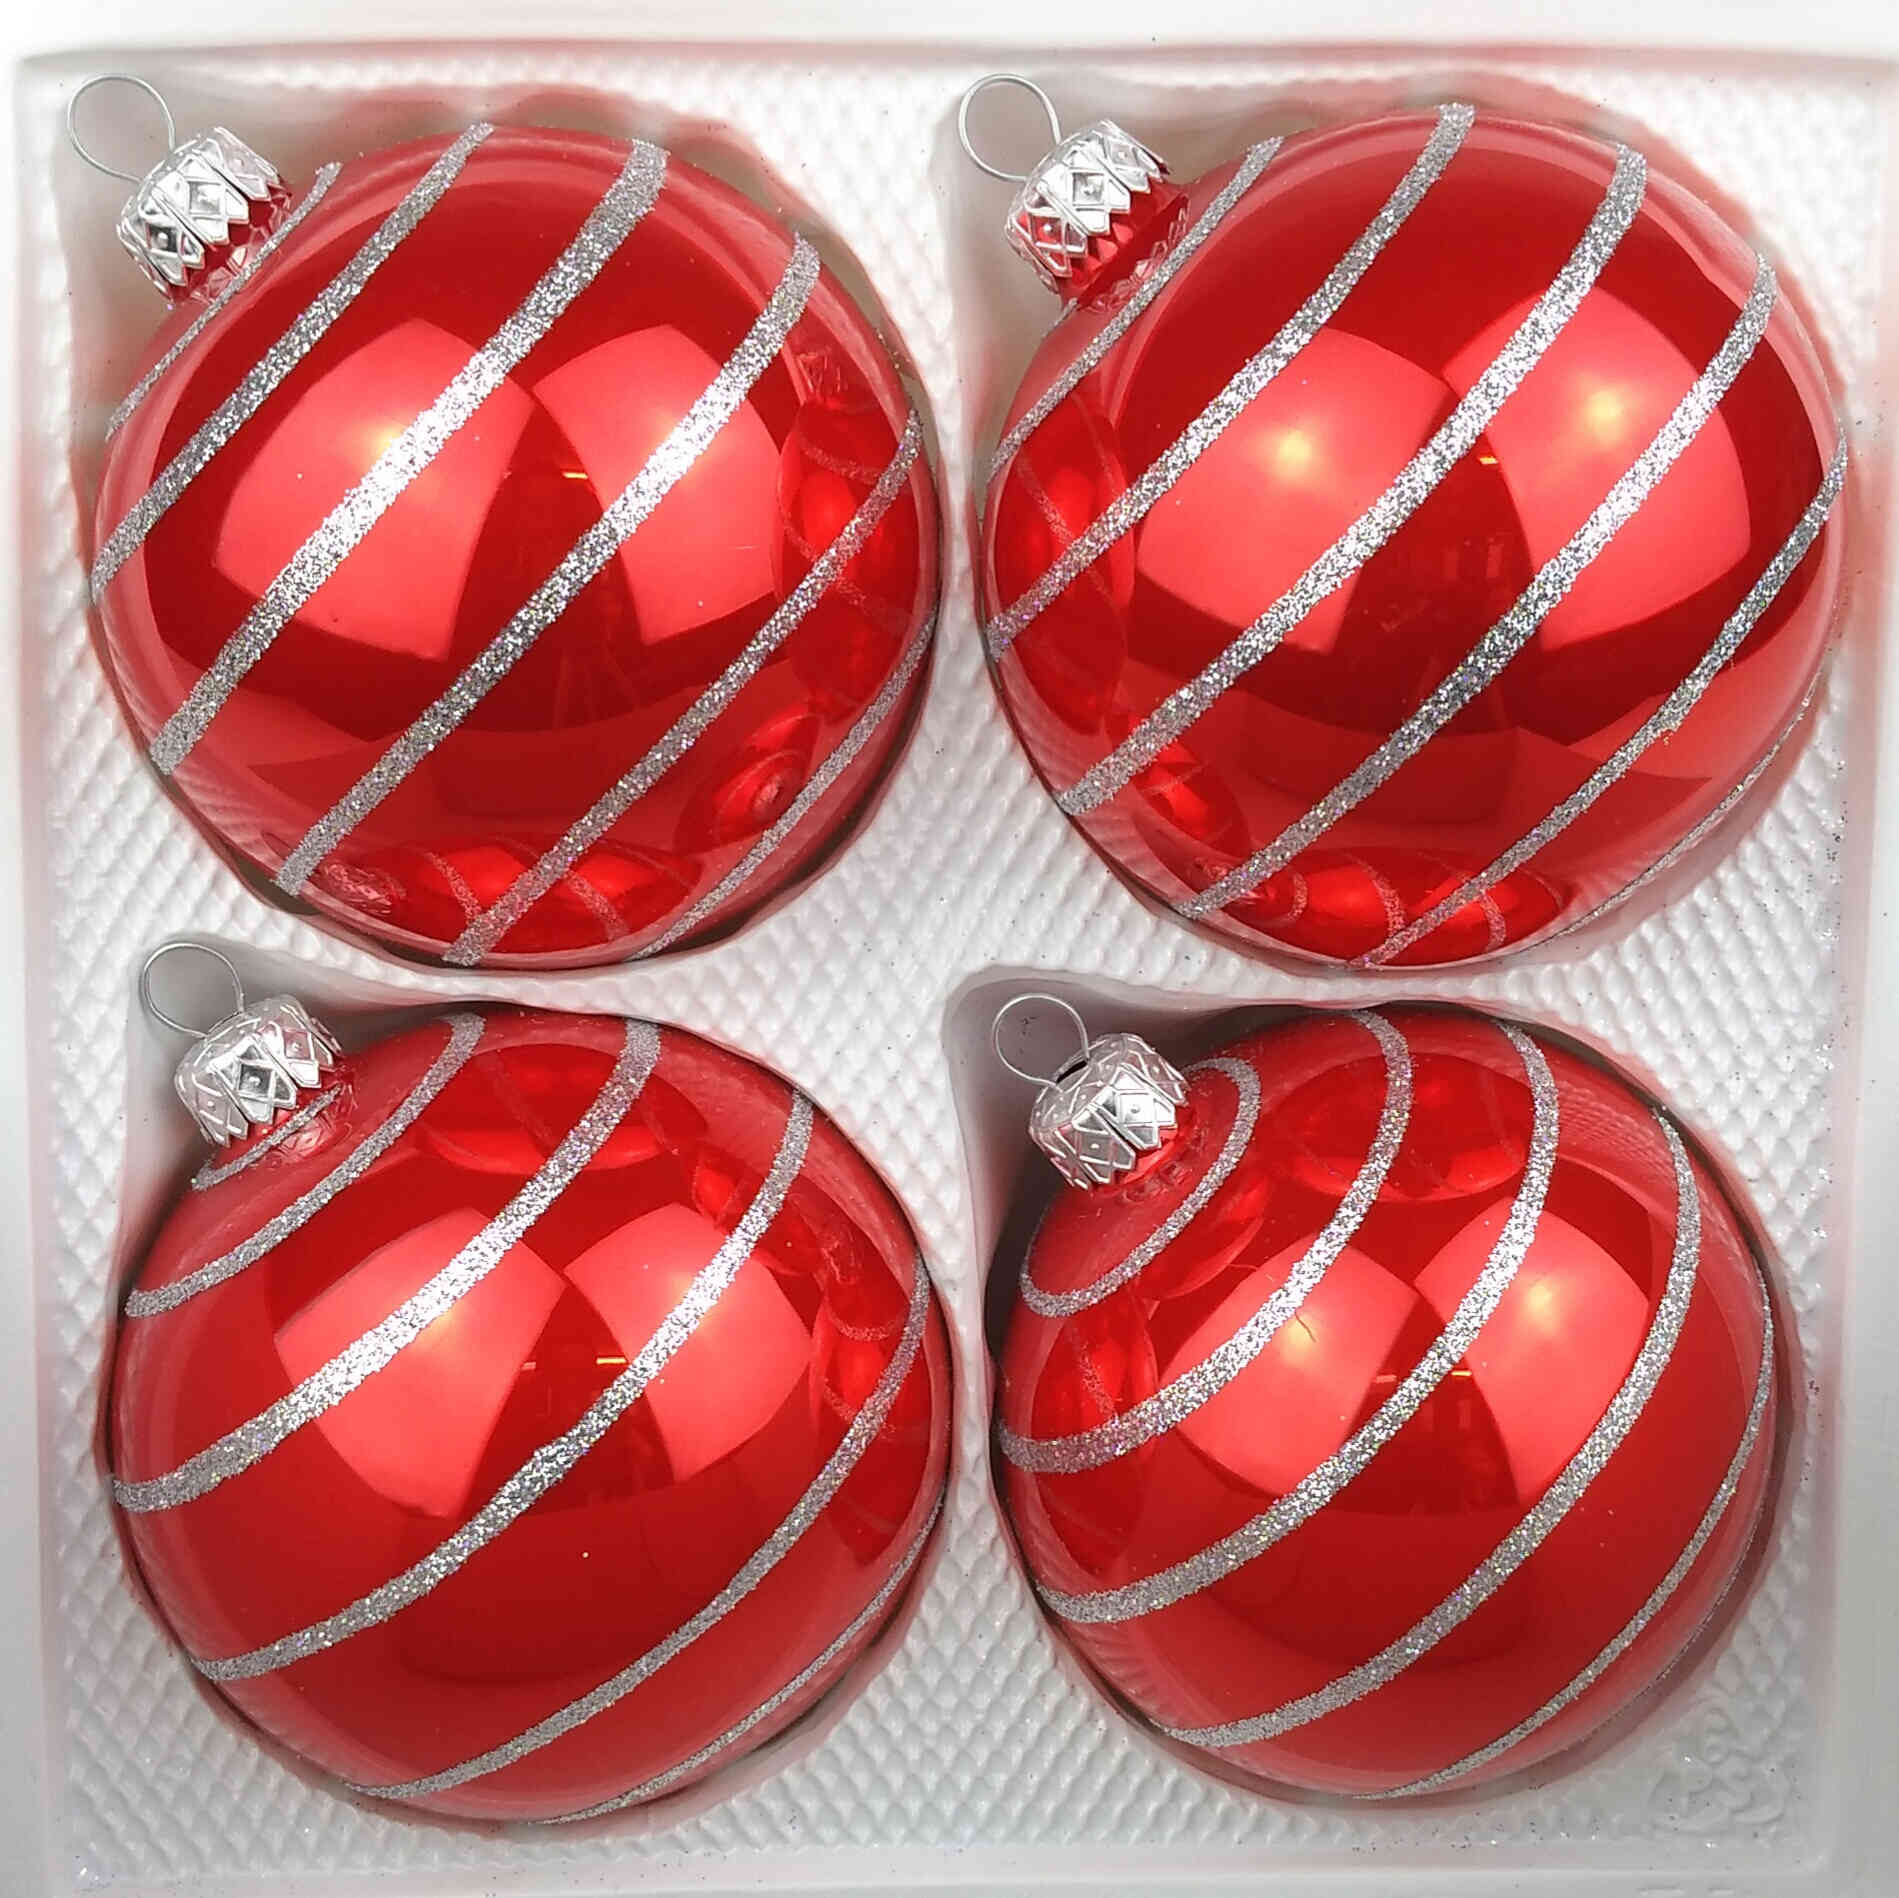 4 Handmade Christmas Ornaments Candy Red Silver Lines 3 15